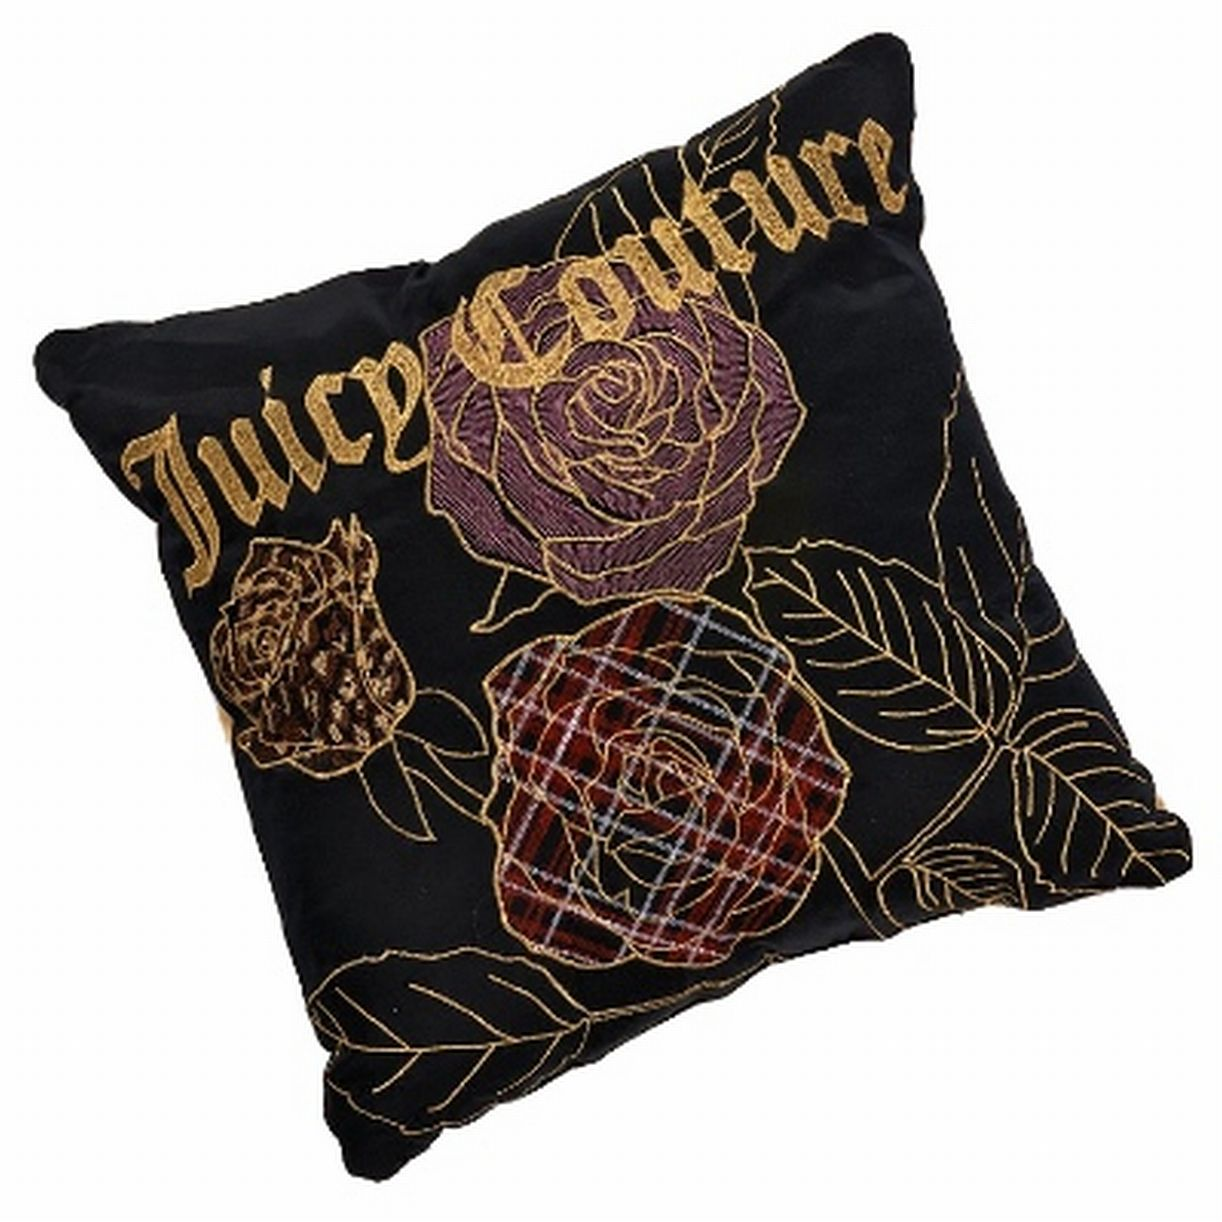 Juicy Couture Black With Gold Rose Throw Pillow Gilded Accent Toss Cushion